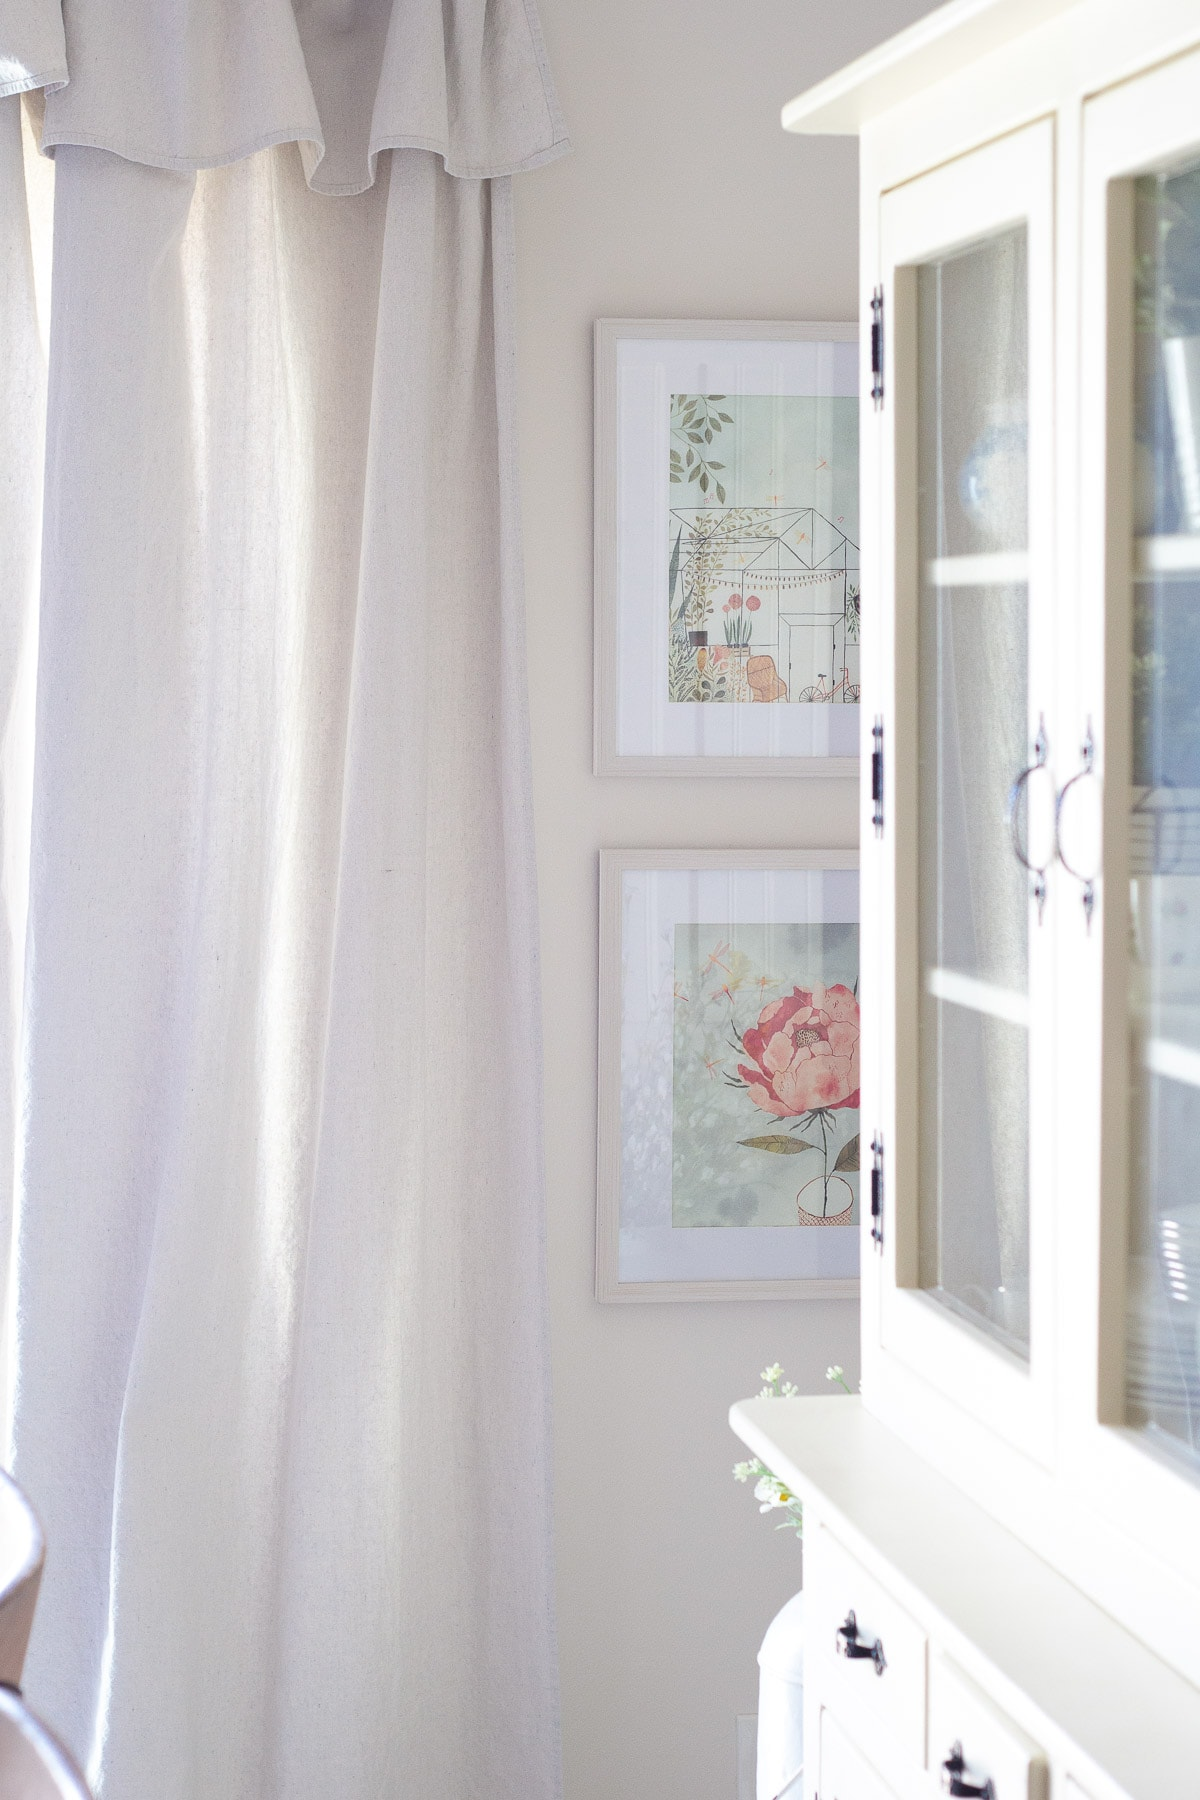 Two framed pictures on a white wall surrounded by drop cloth curtains and a white hutch.